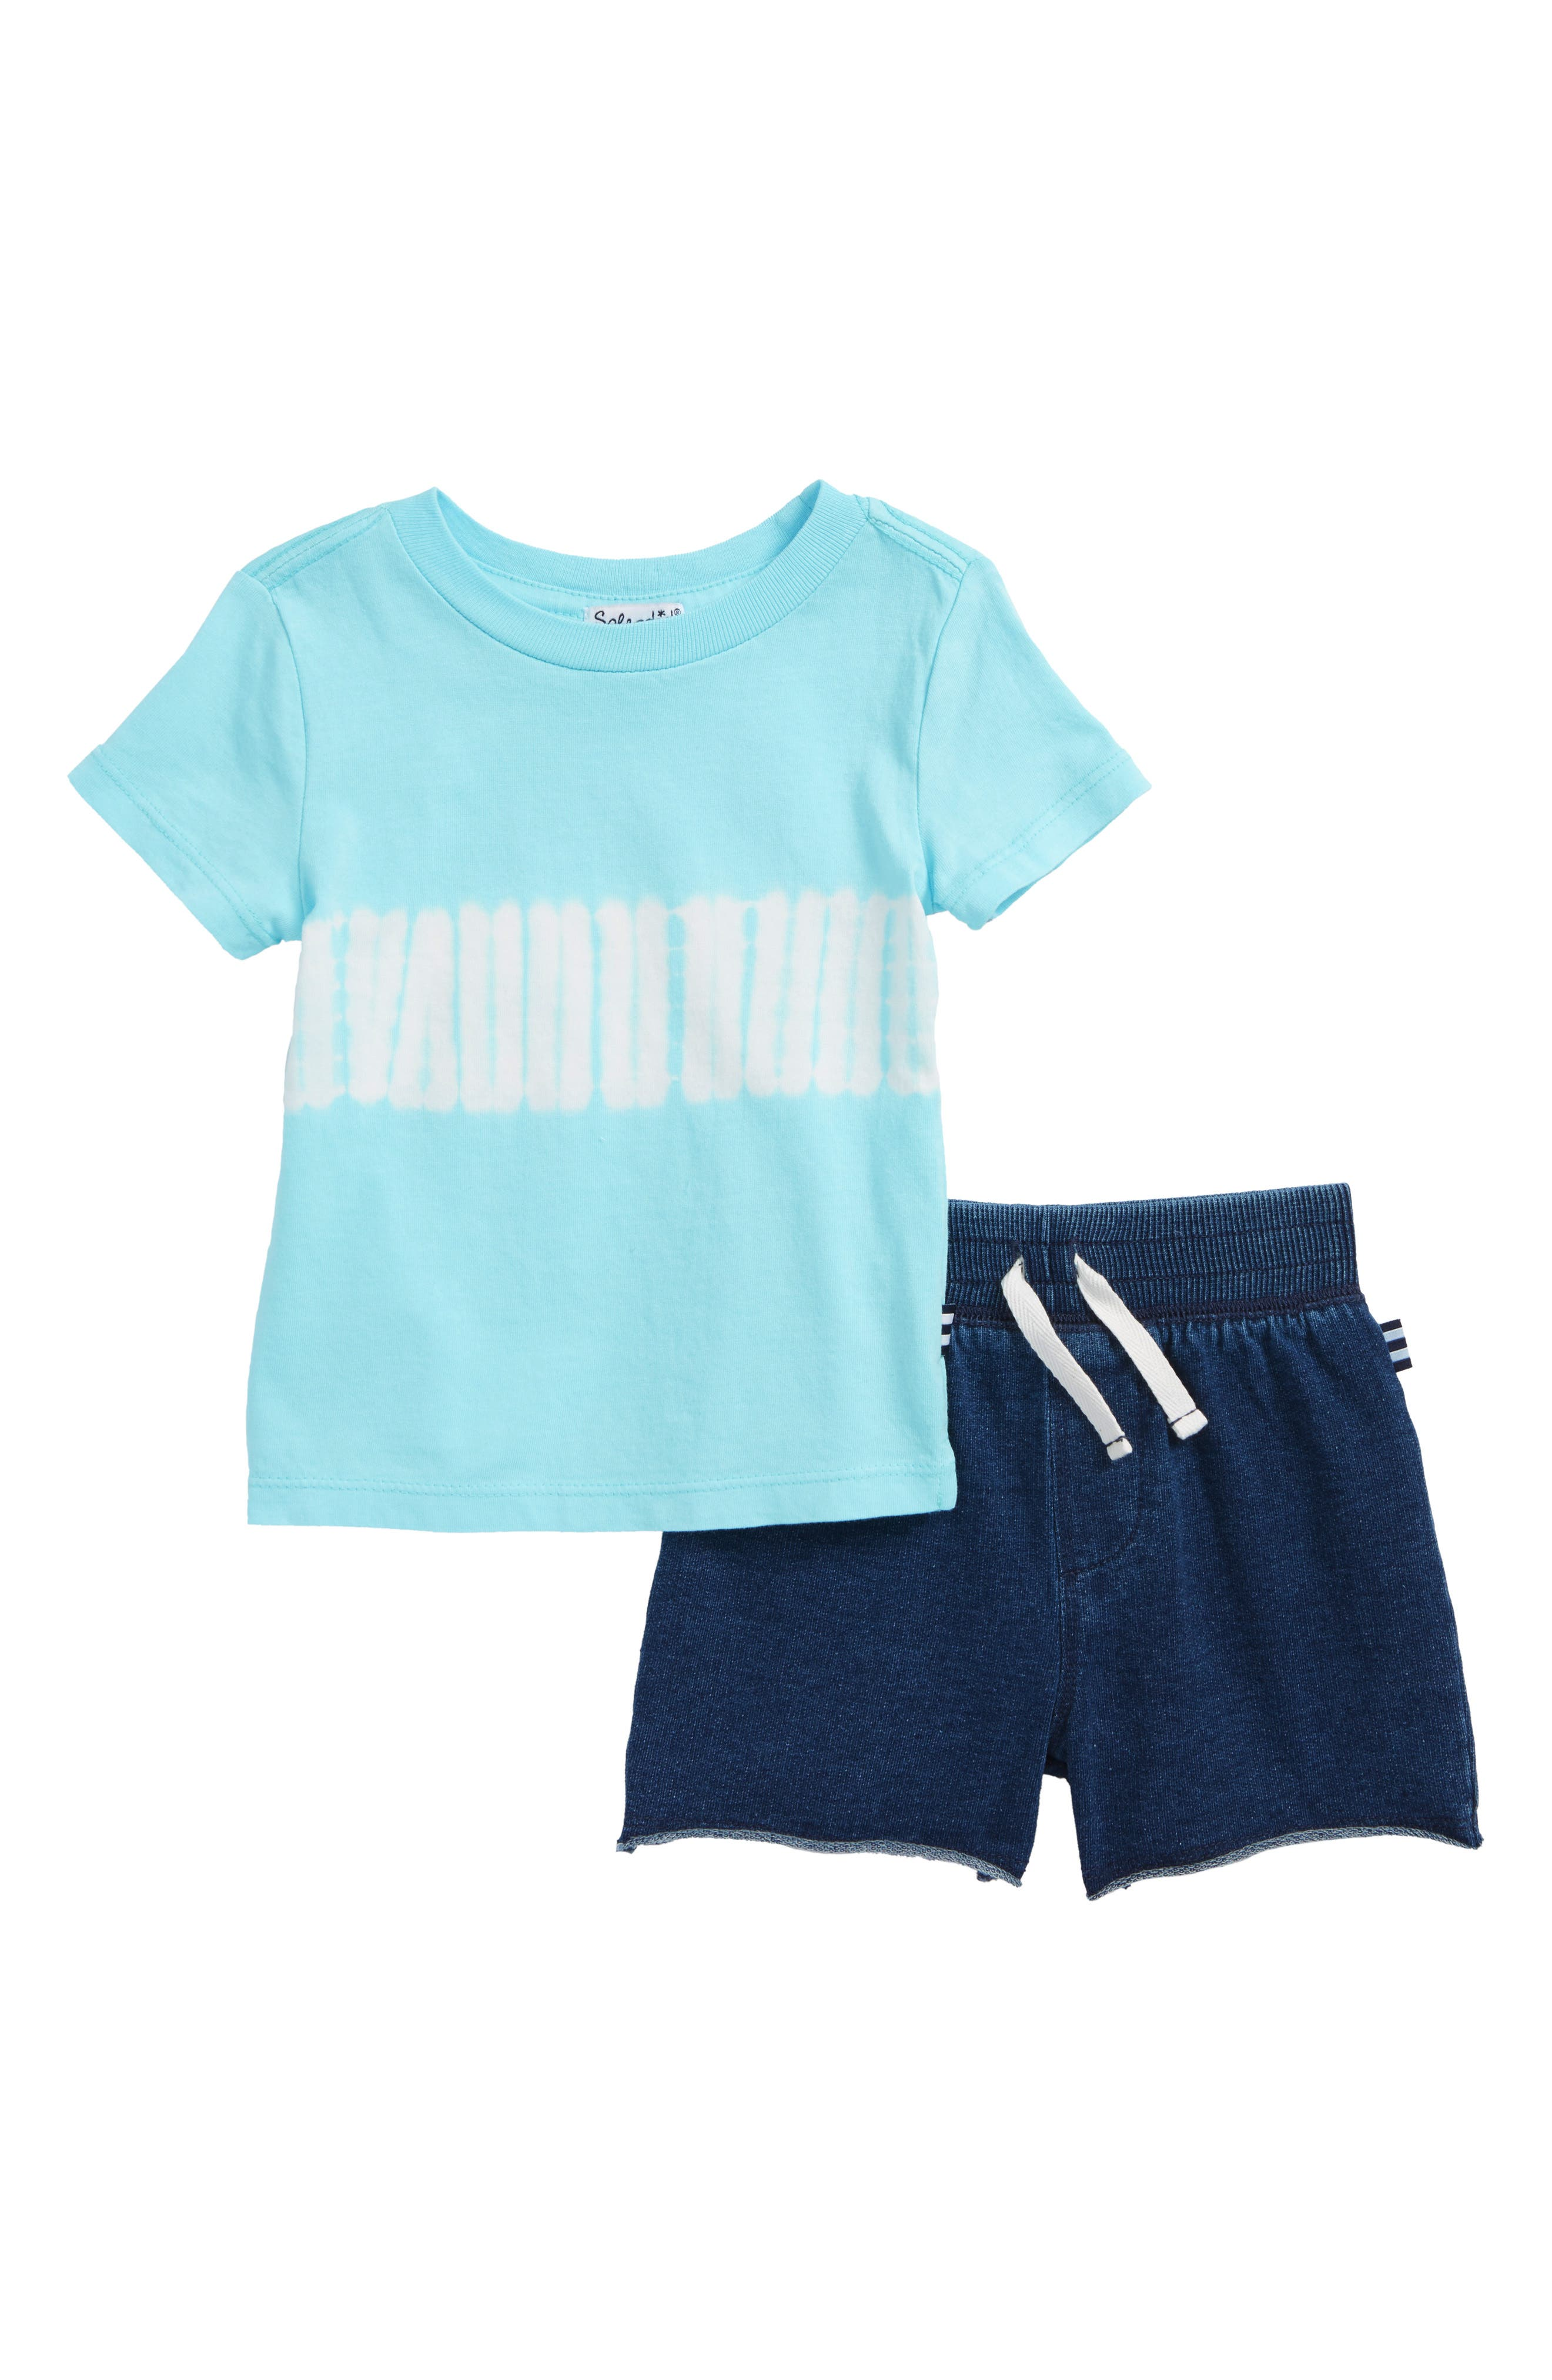 Tie Dye T-Shirt & Shorts Set,                             Main thumbnail 1, color,                             401